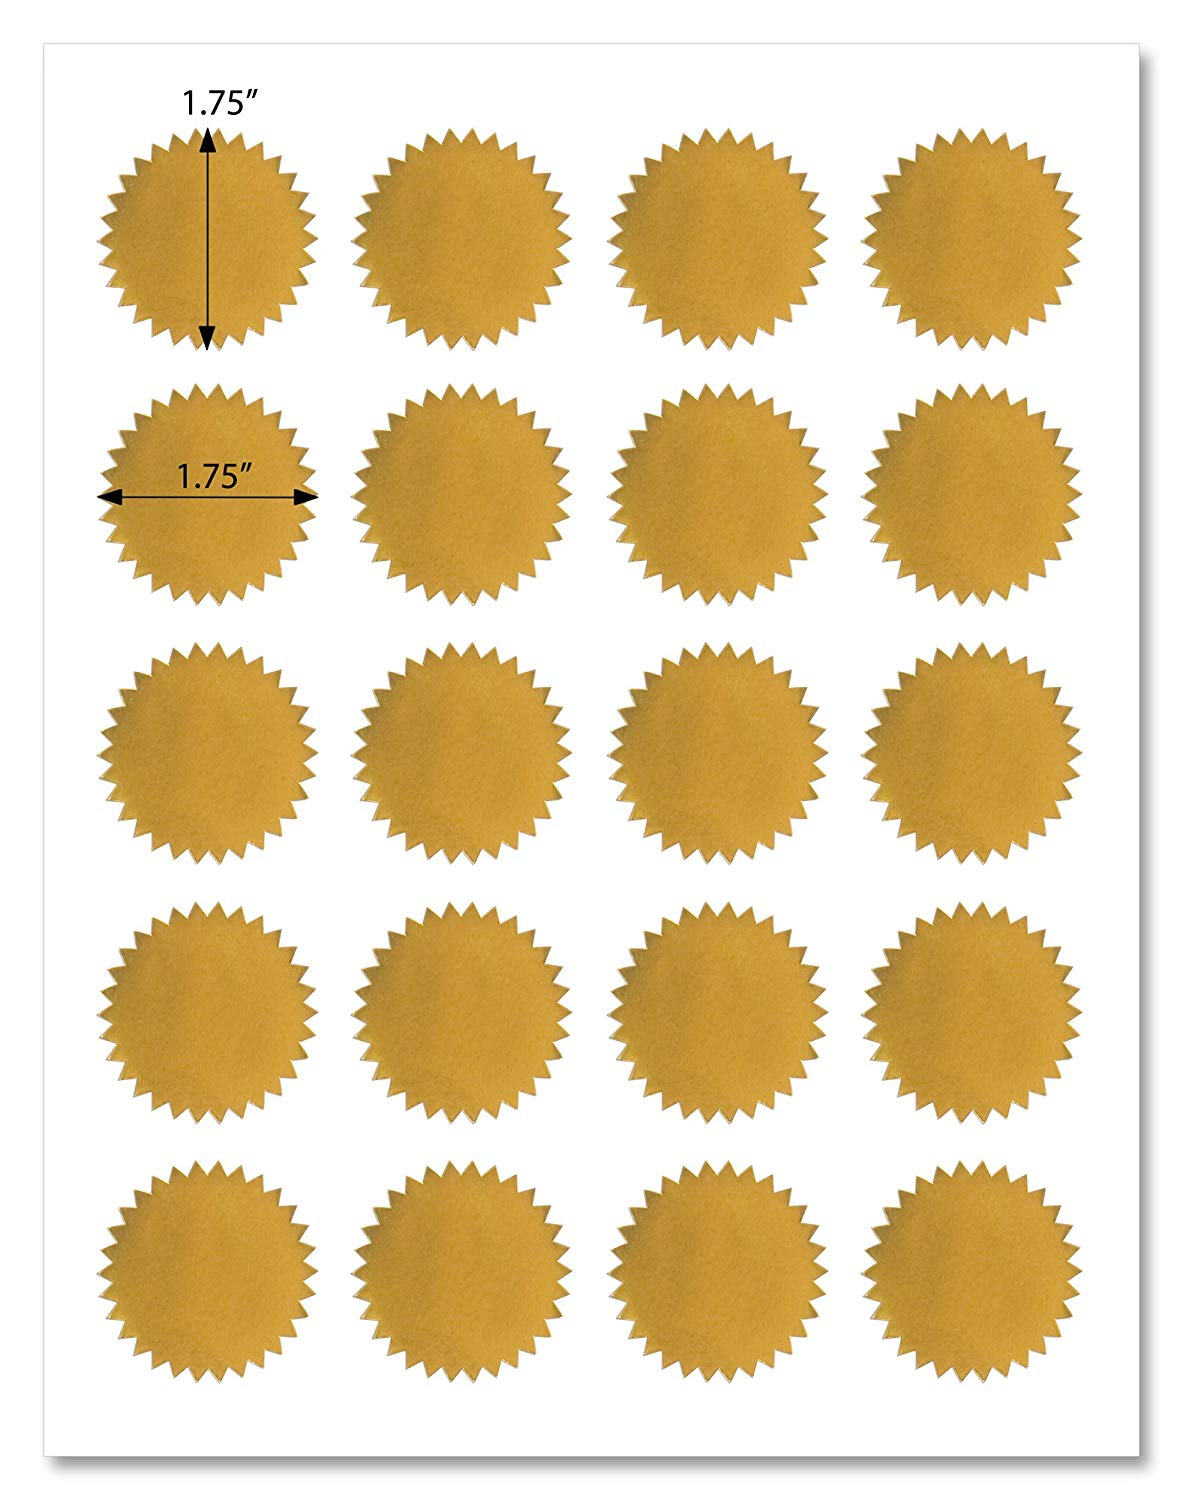 Cheap round template labels find round template labels deals on get quotations shiny gold foil round starburst labels 175 inch diameter for laser printers with downloadable maxwellsz